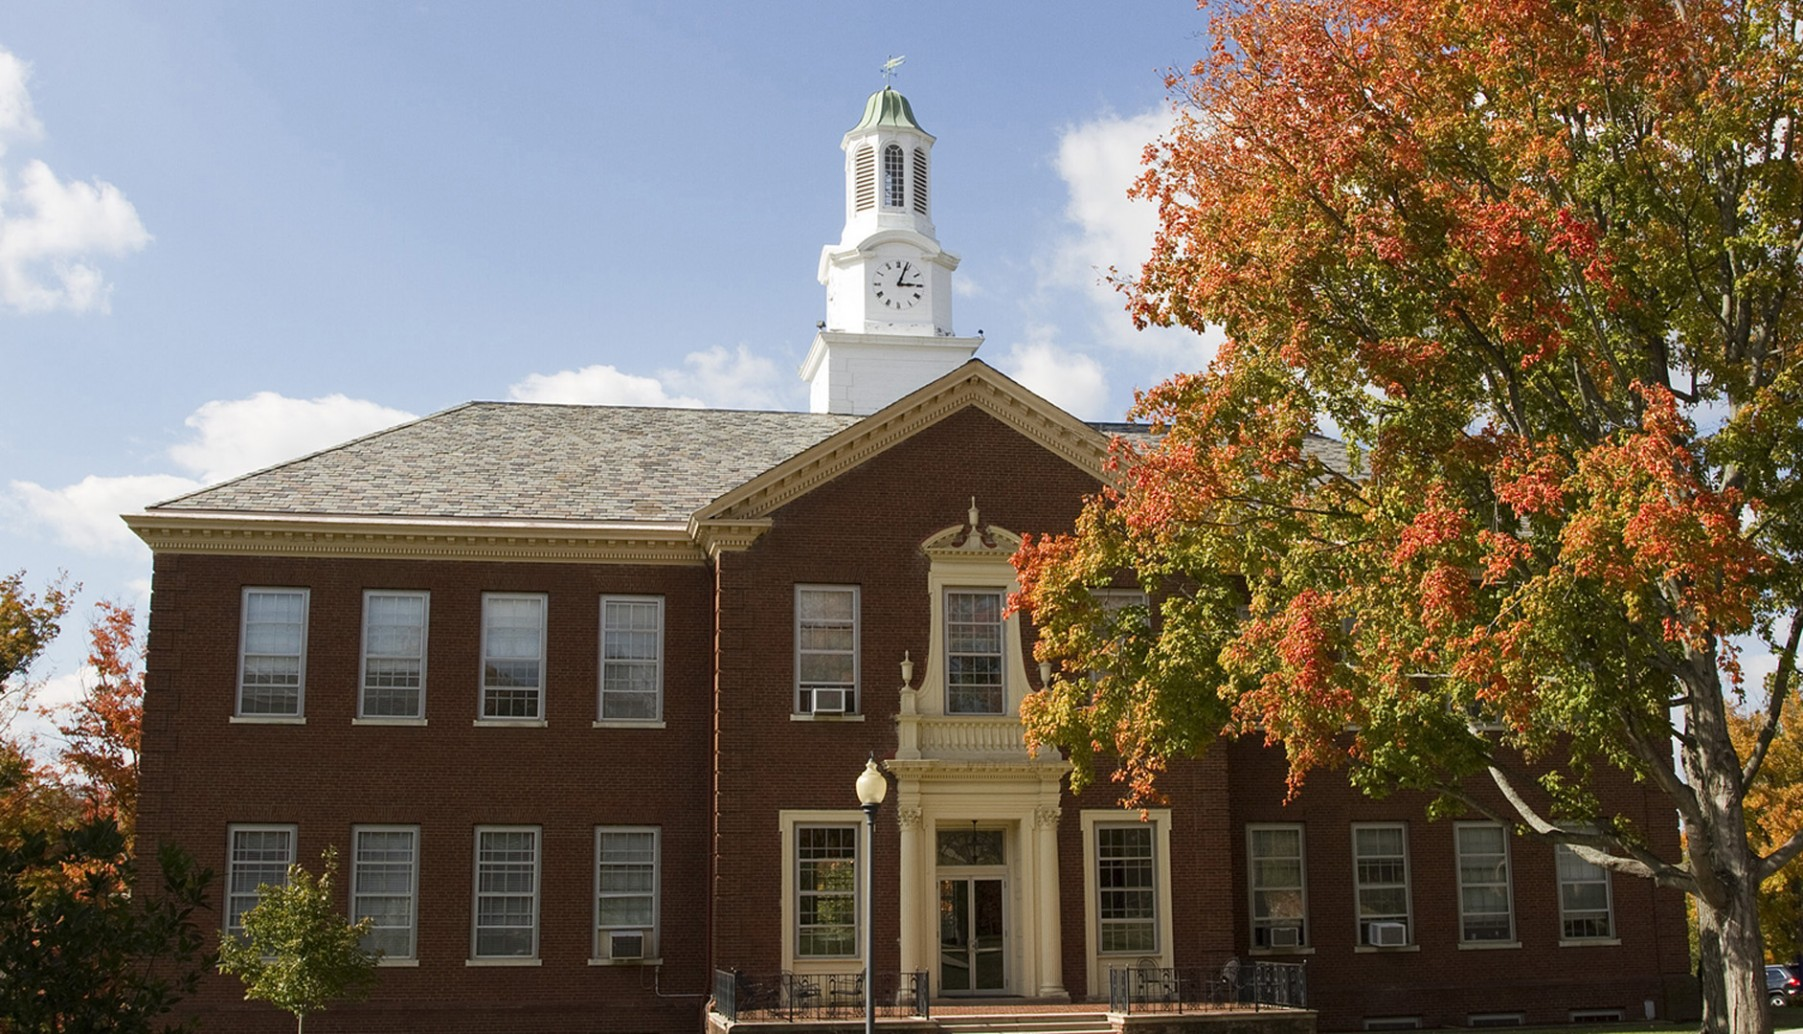 Midway University offers bachelor's and masters programs on campus and online.